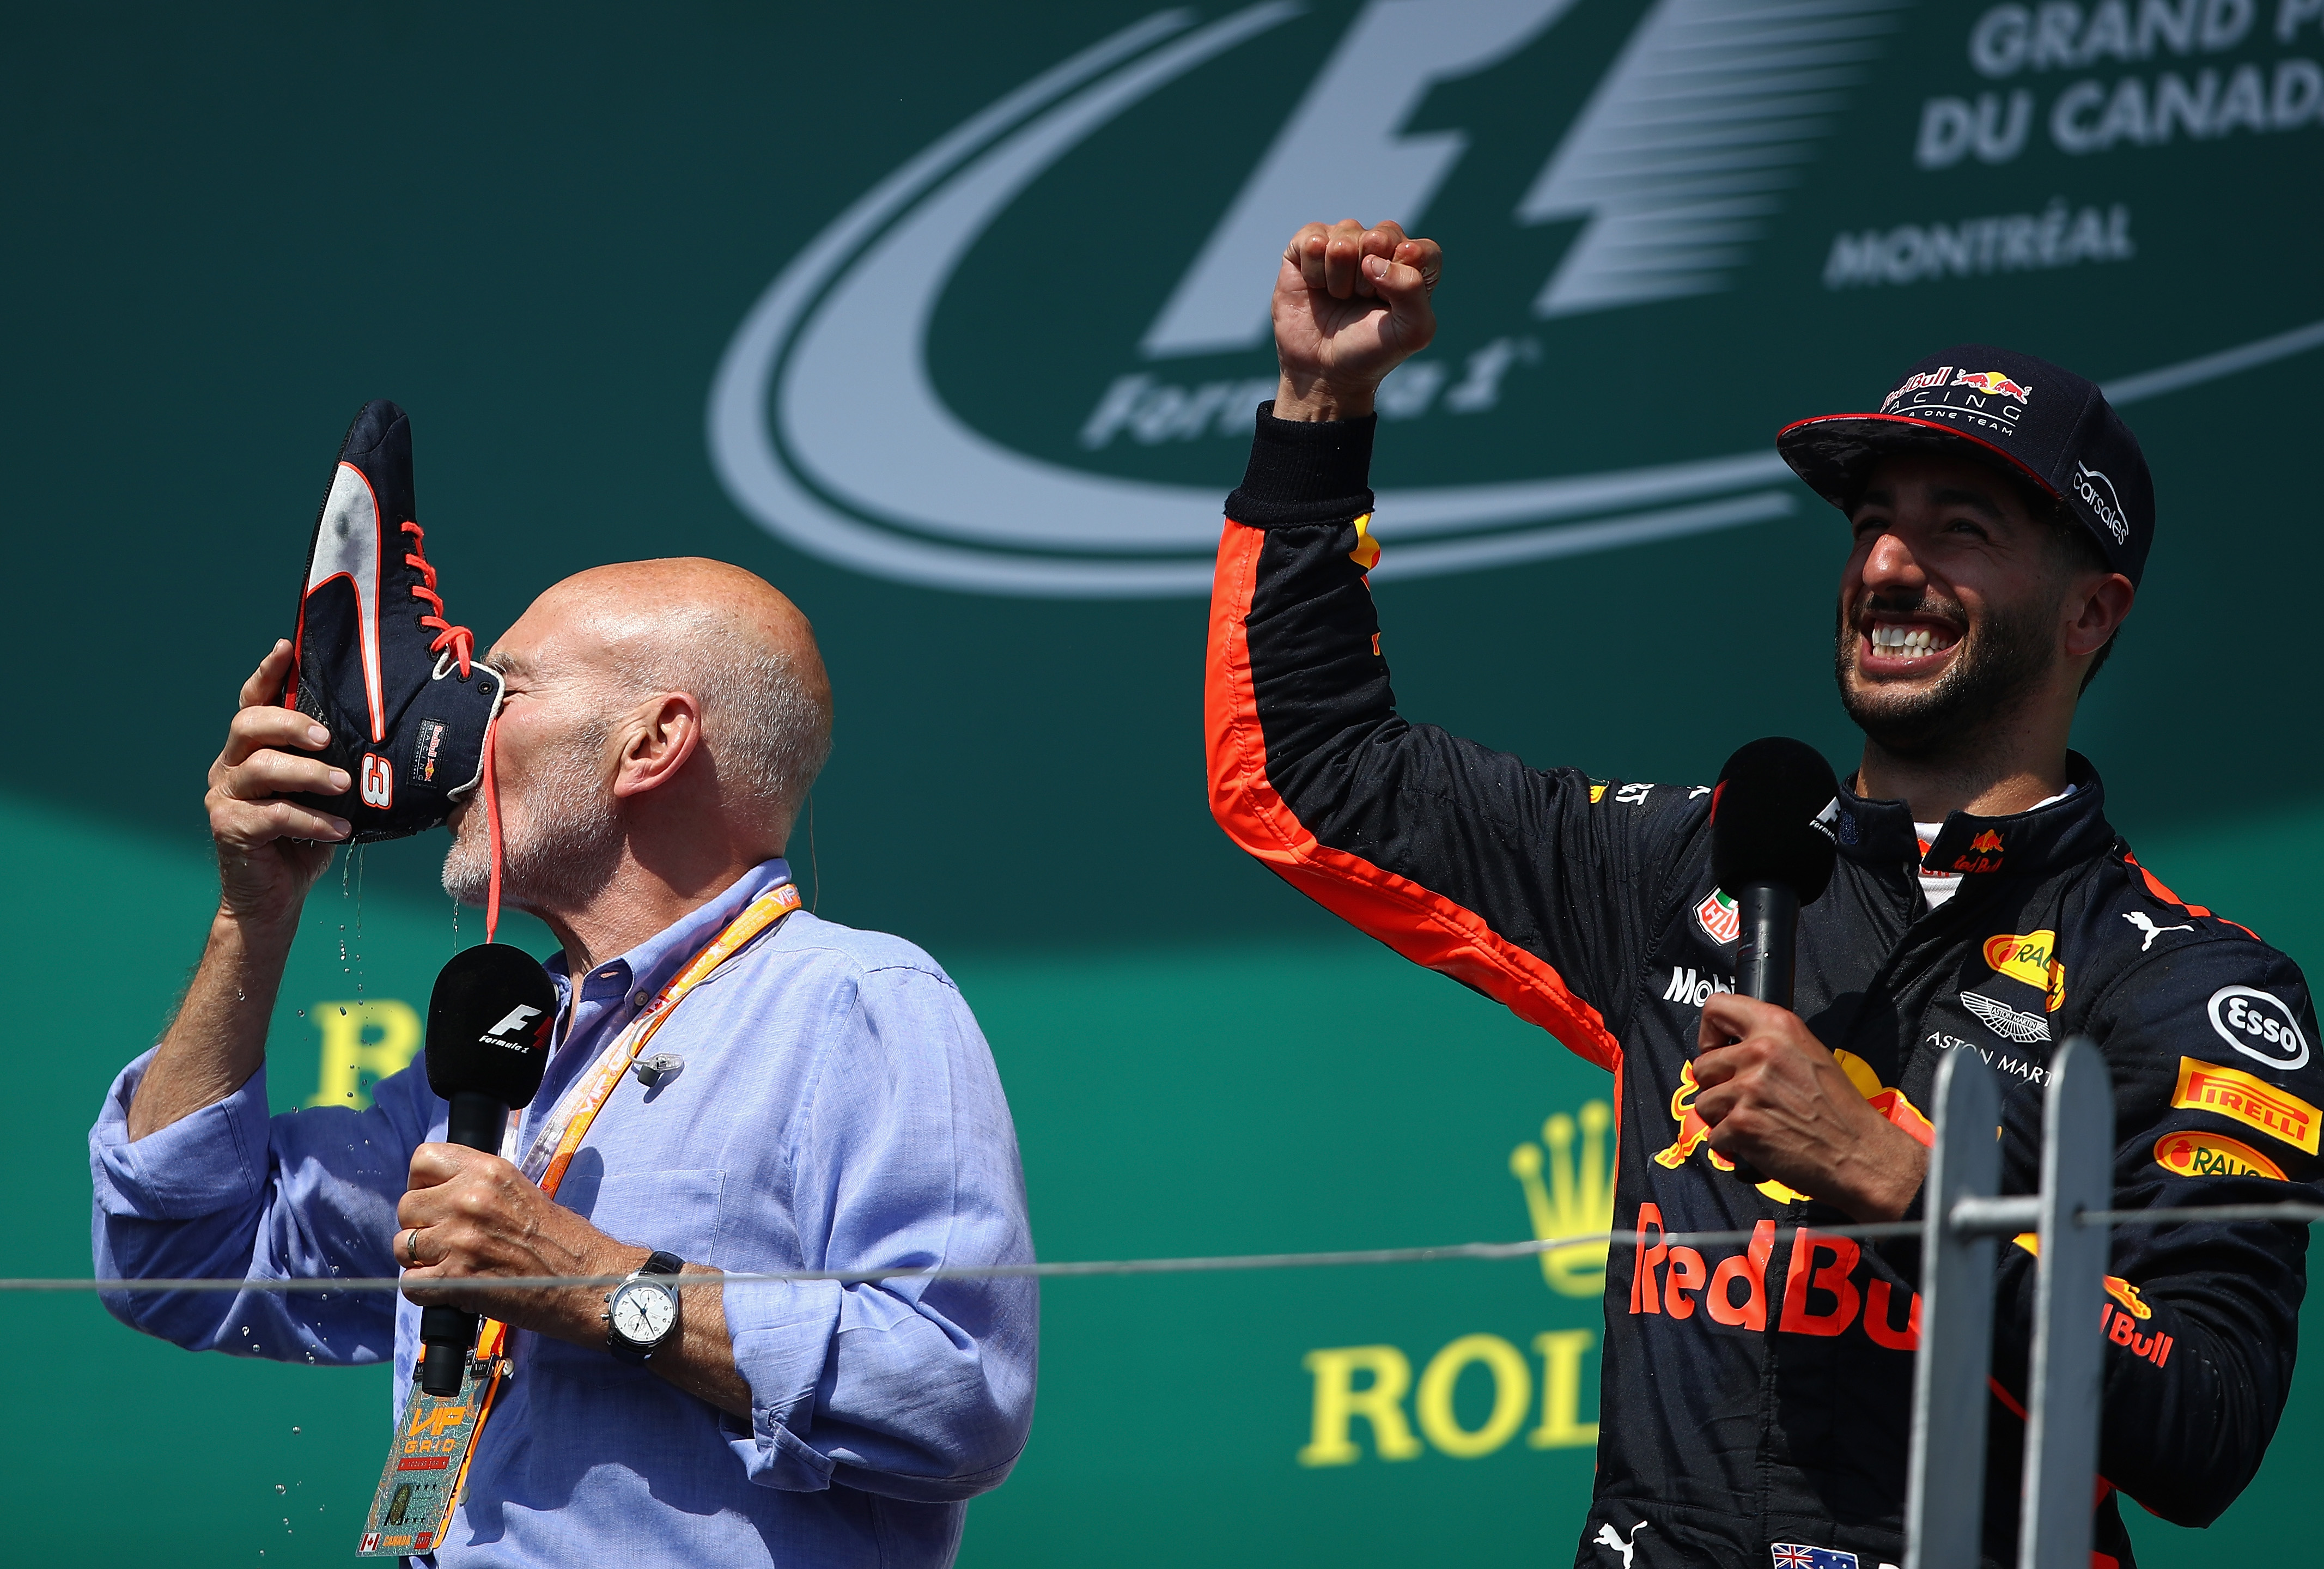 Actor Sir Patrick Stewart celebrates on the podium with Daniel Ricciardo and a shoey after Ricciardo's podium finish at the Canadian Formula One Grand Prix. Picture: Clive Mason/Getty Images